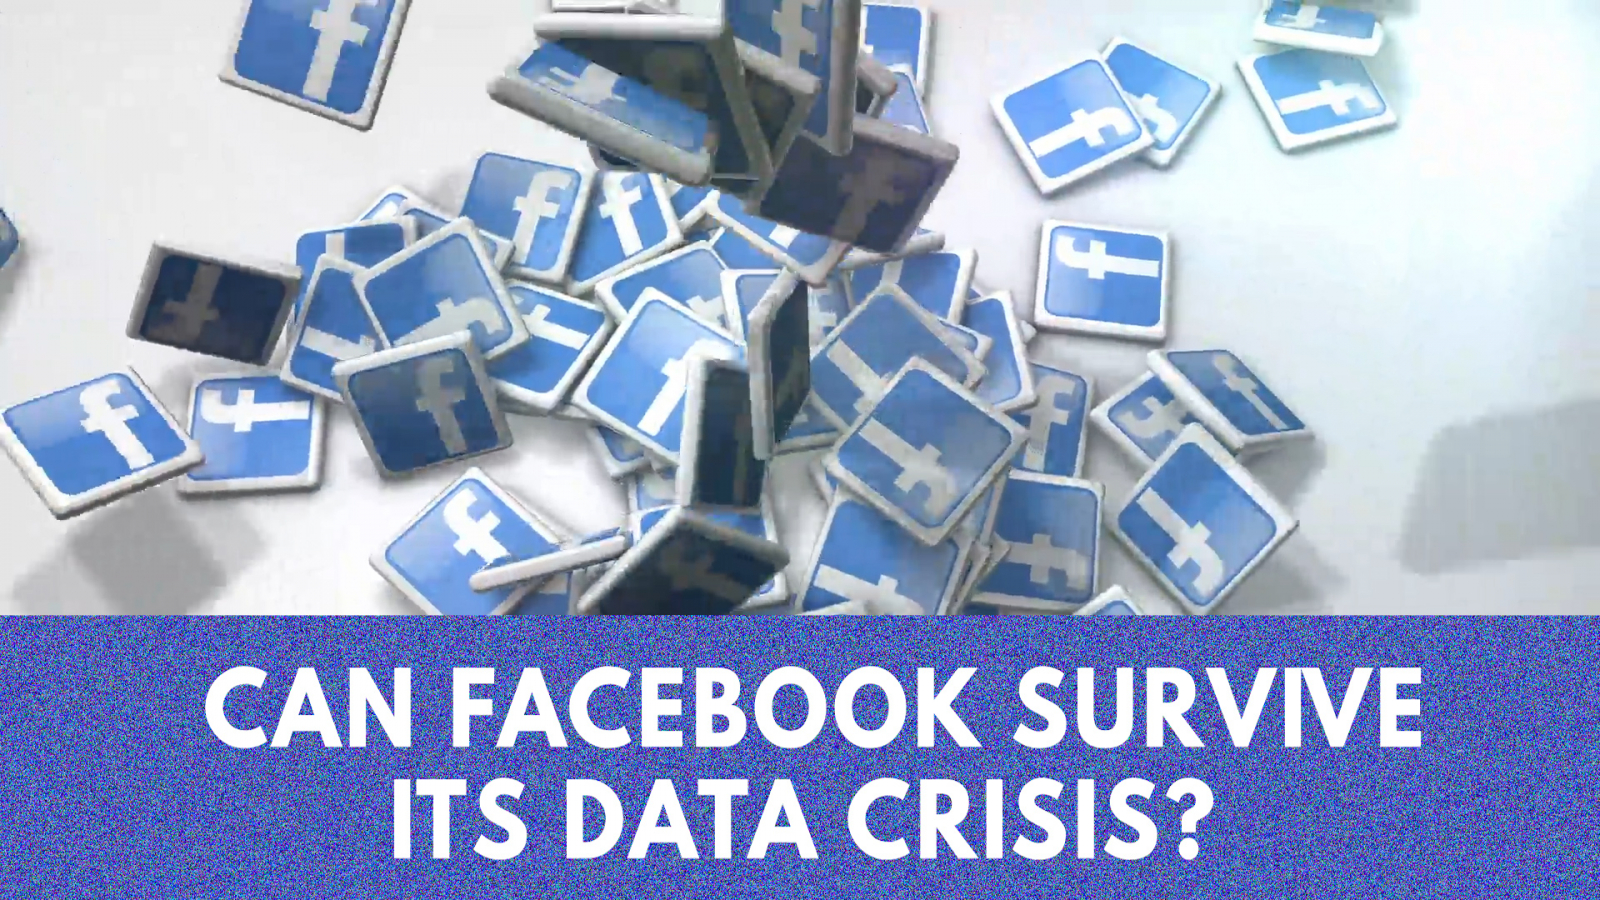 facebook-data-crisis-what-comes-next-after-a-breach-of-trust